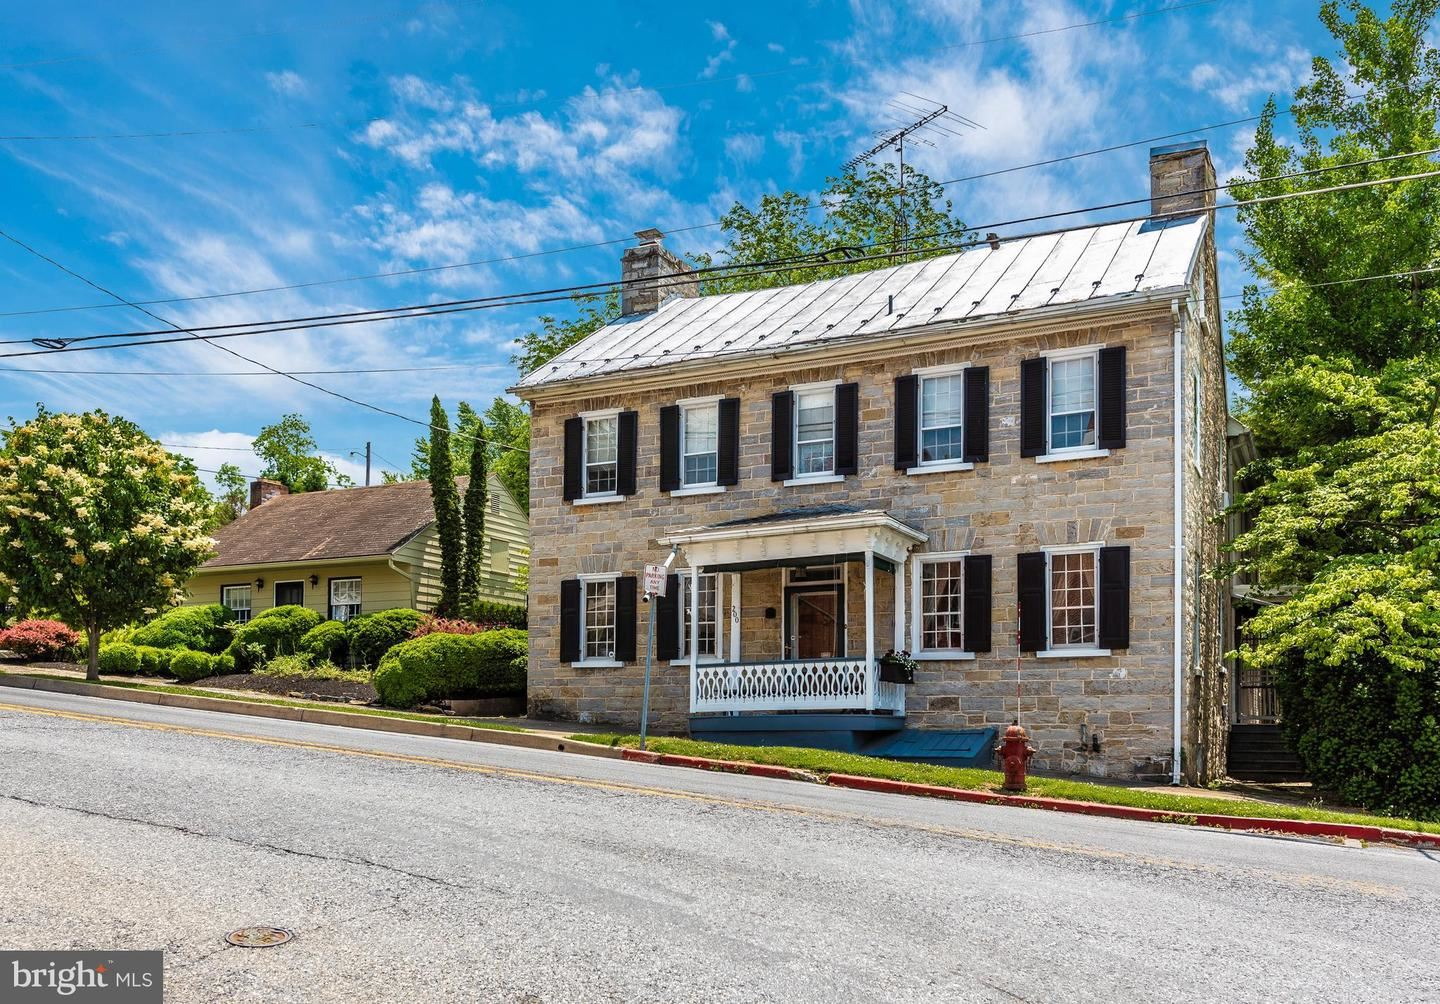 Photo of 200 E MAIN ST, SHARPSBURG, MD 21782 (MLS # MDWA175648)